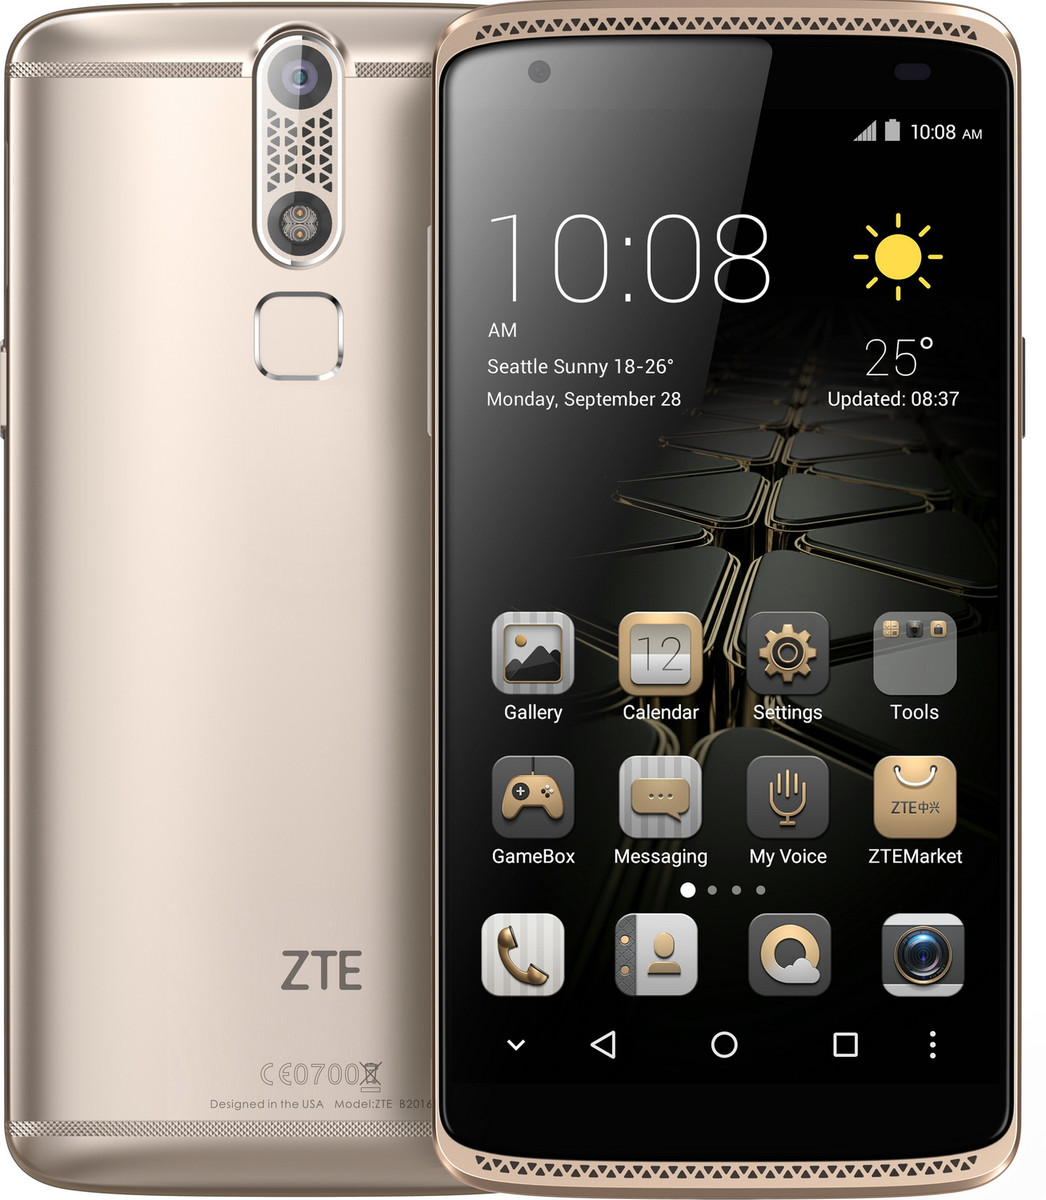 more Read zte axon 7 premium edition Cabrera, nursing leg